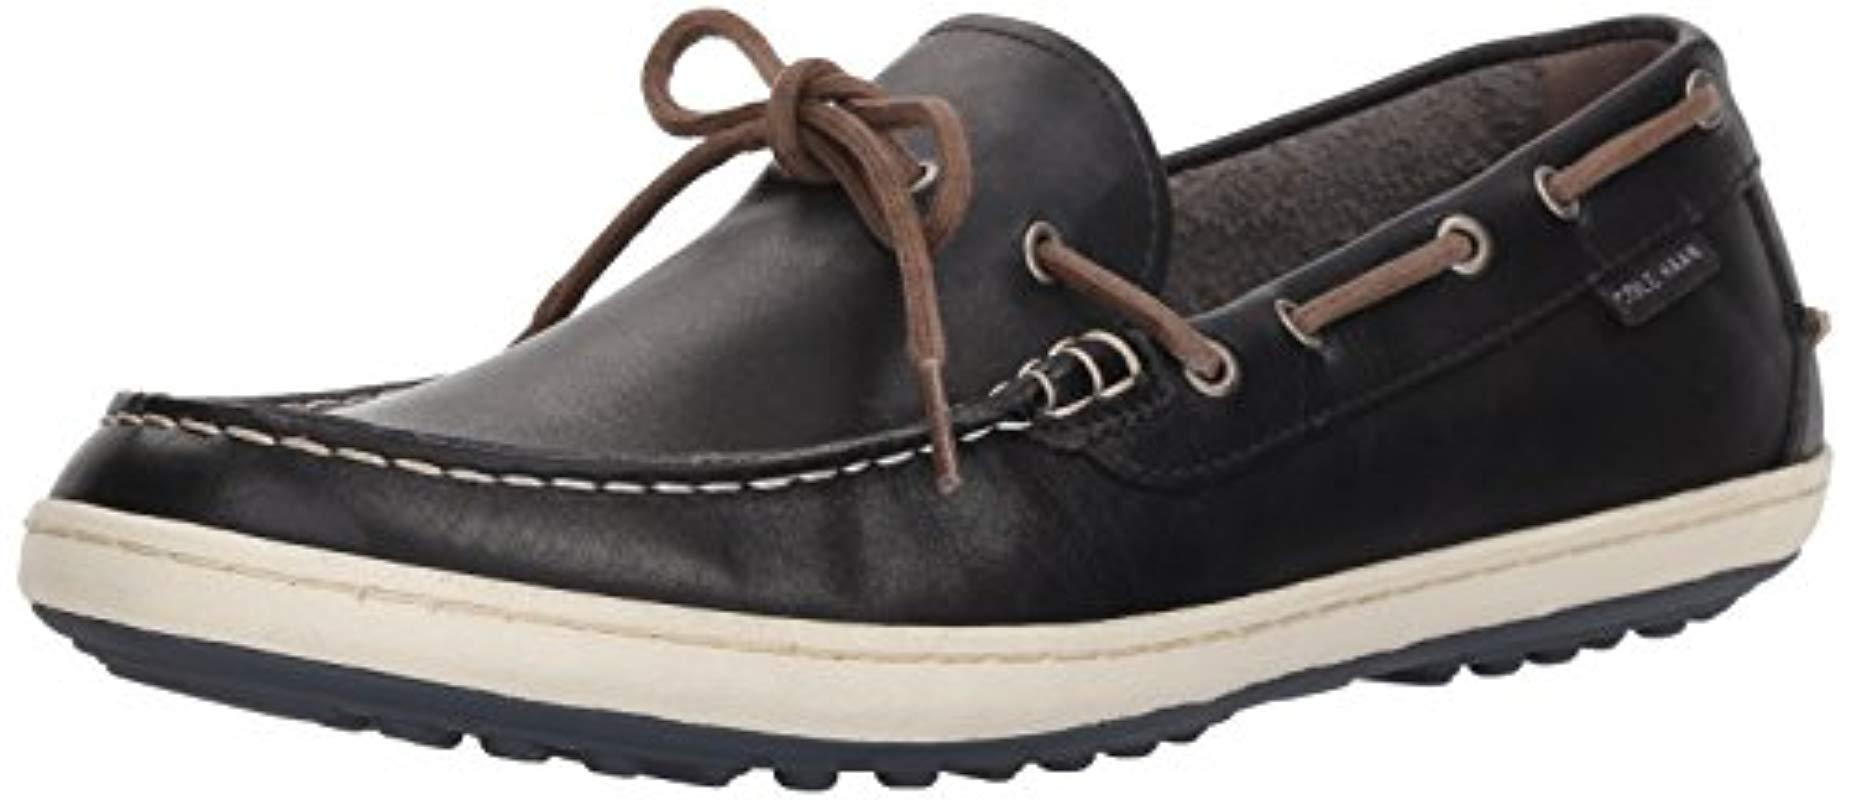 a730647e667 Lyst - Cole Haan Pinch Roadtrip Camp Moc Penny Loafer for Men - Save 54%